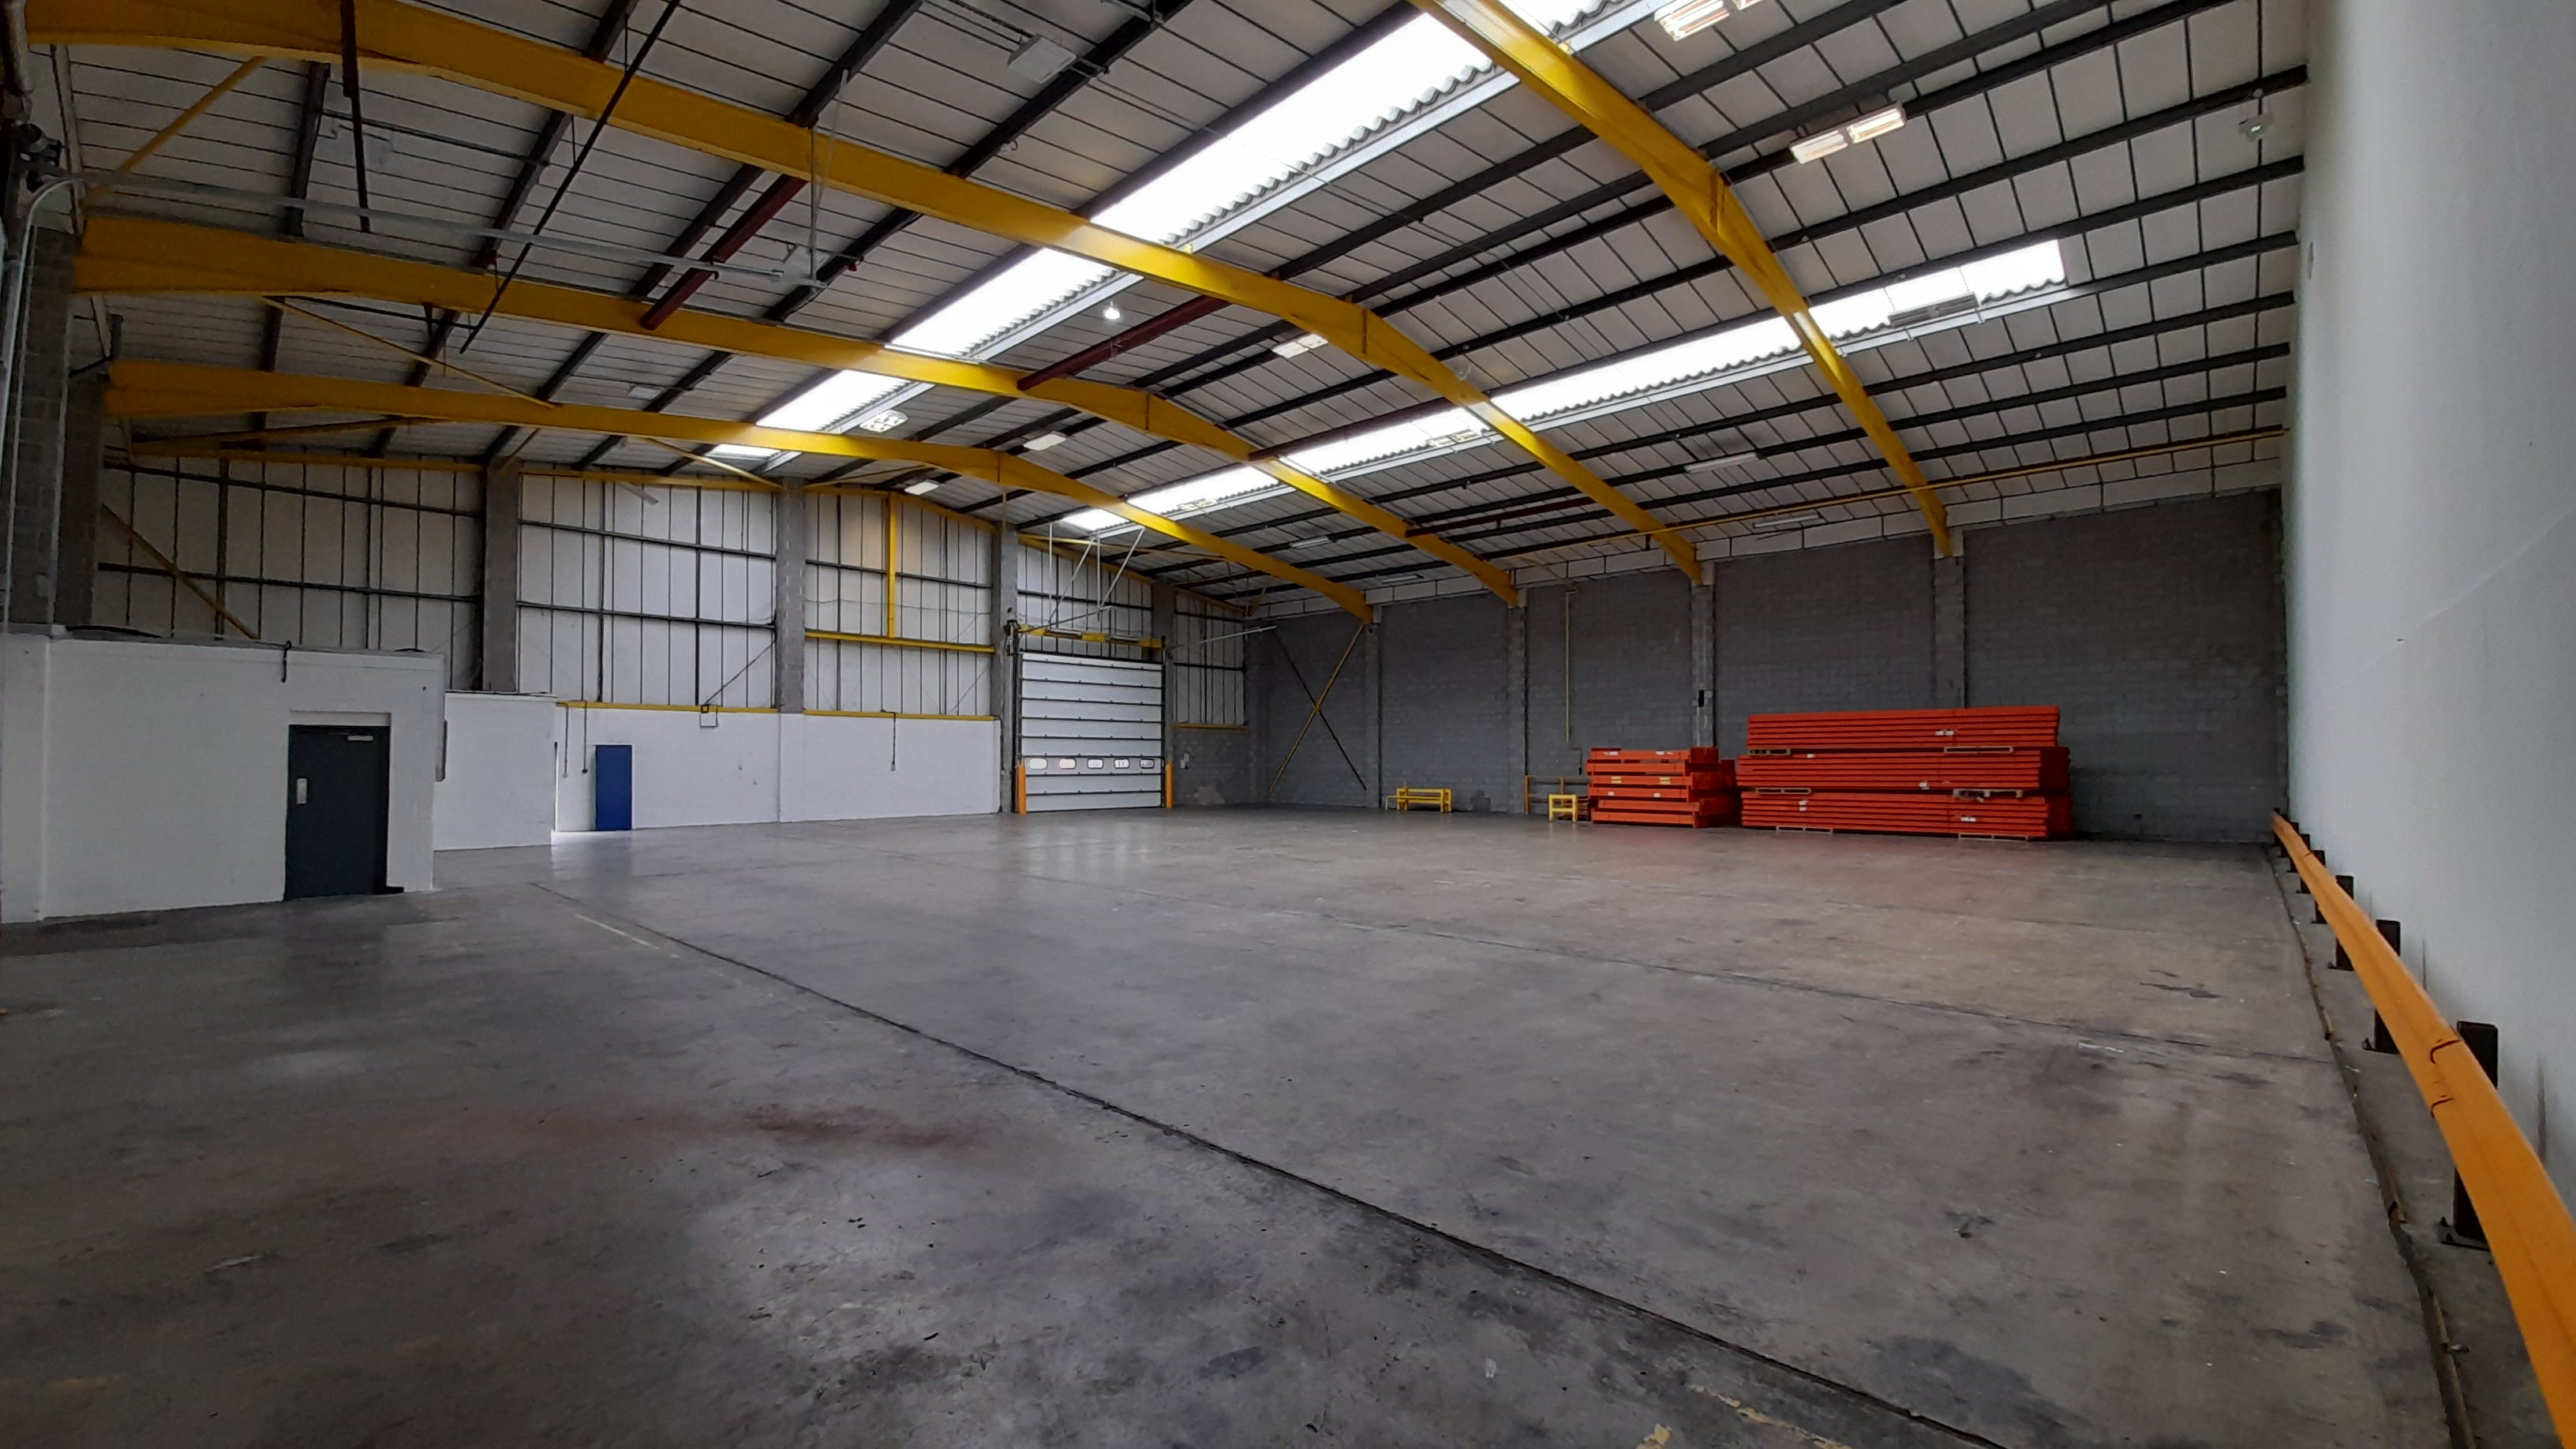 Unit A4a, Macadam Way, Portway West Business Park, Andover, Warehouse & Industrial To Let - Photo 2.jpg